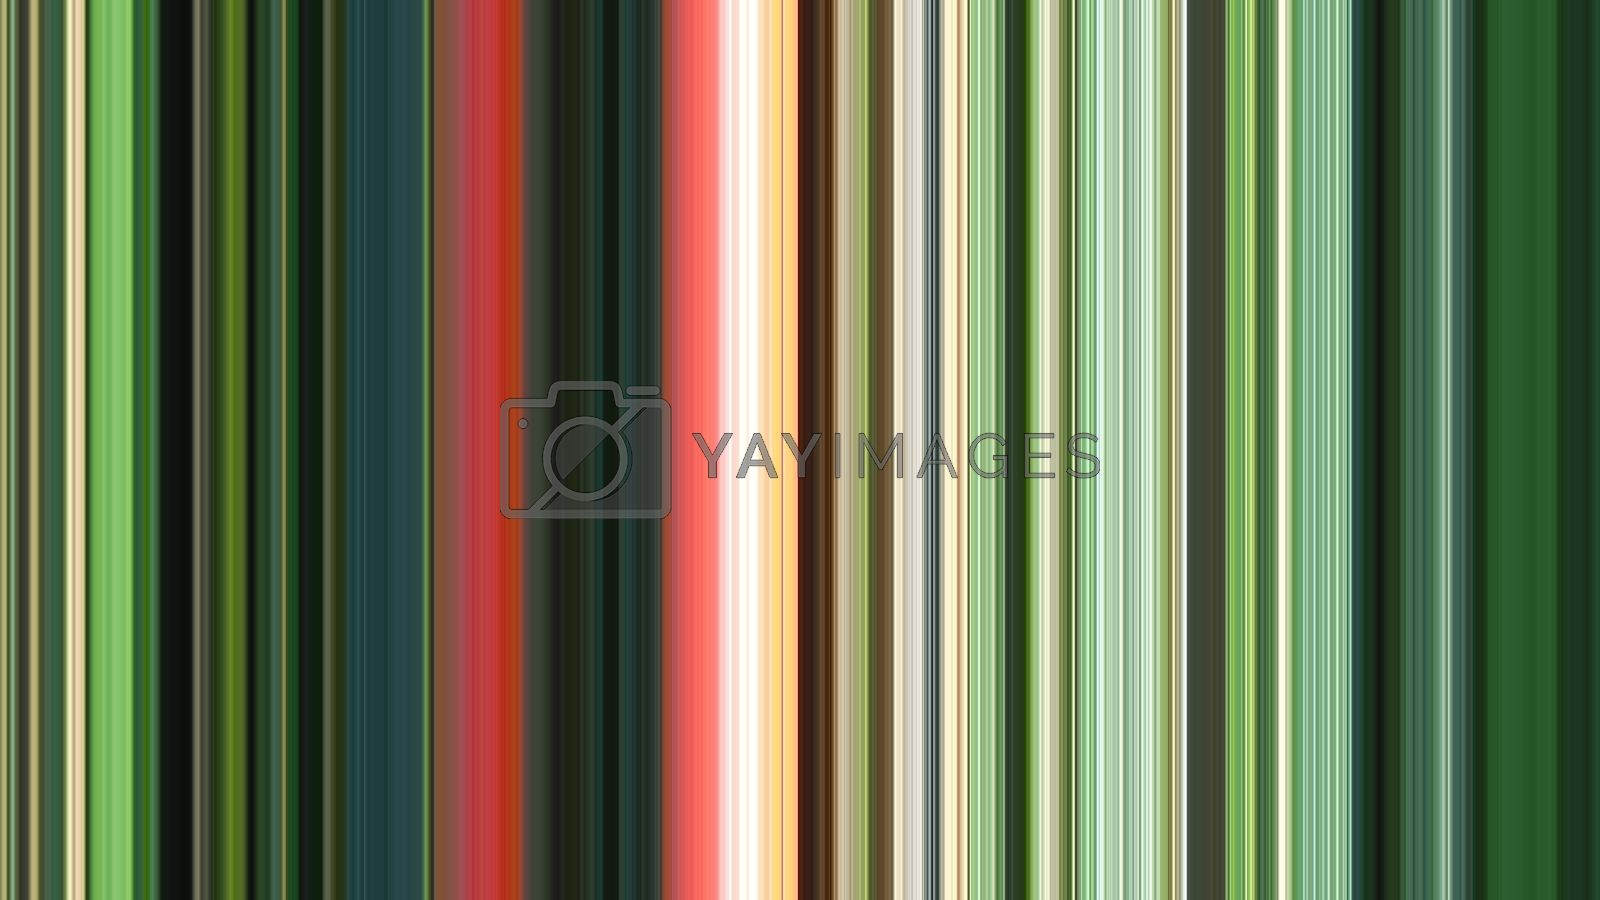 Royalty free image of abstract green stripes by CherJu